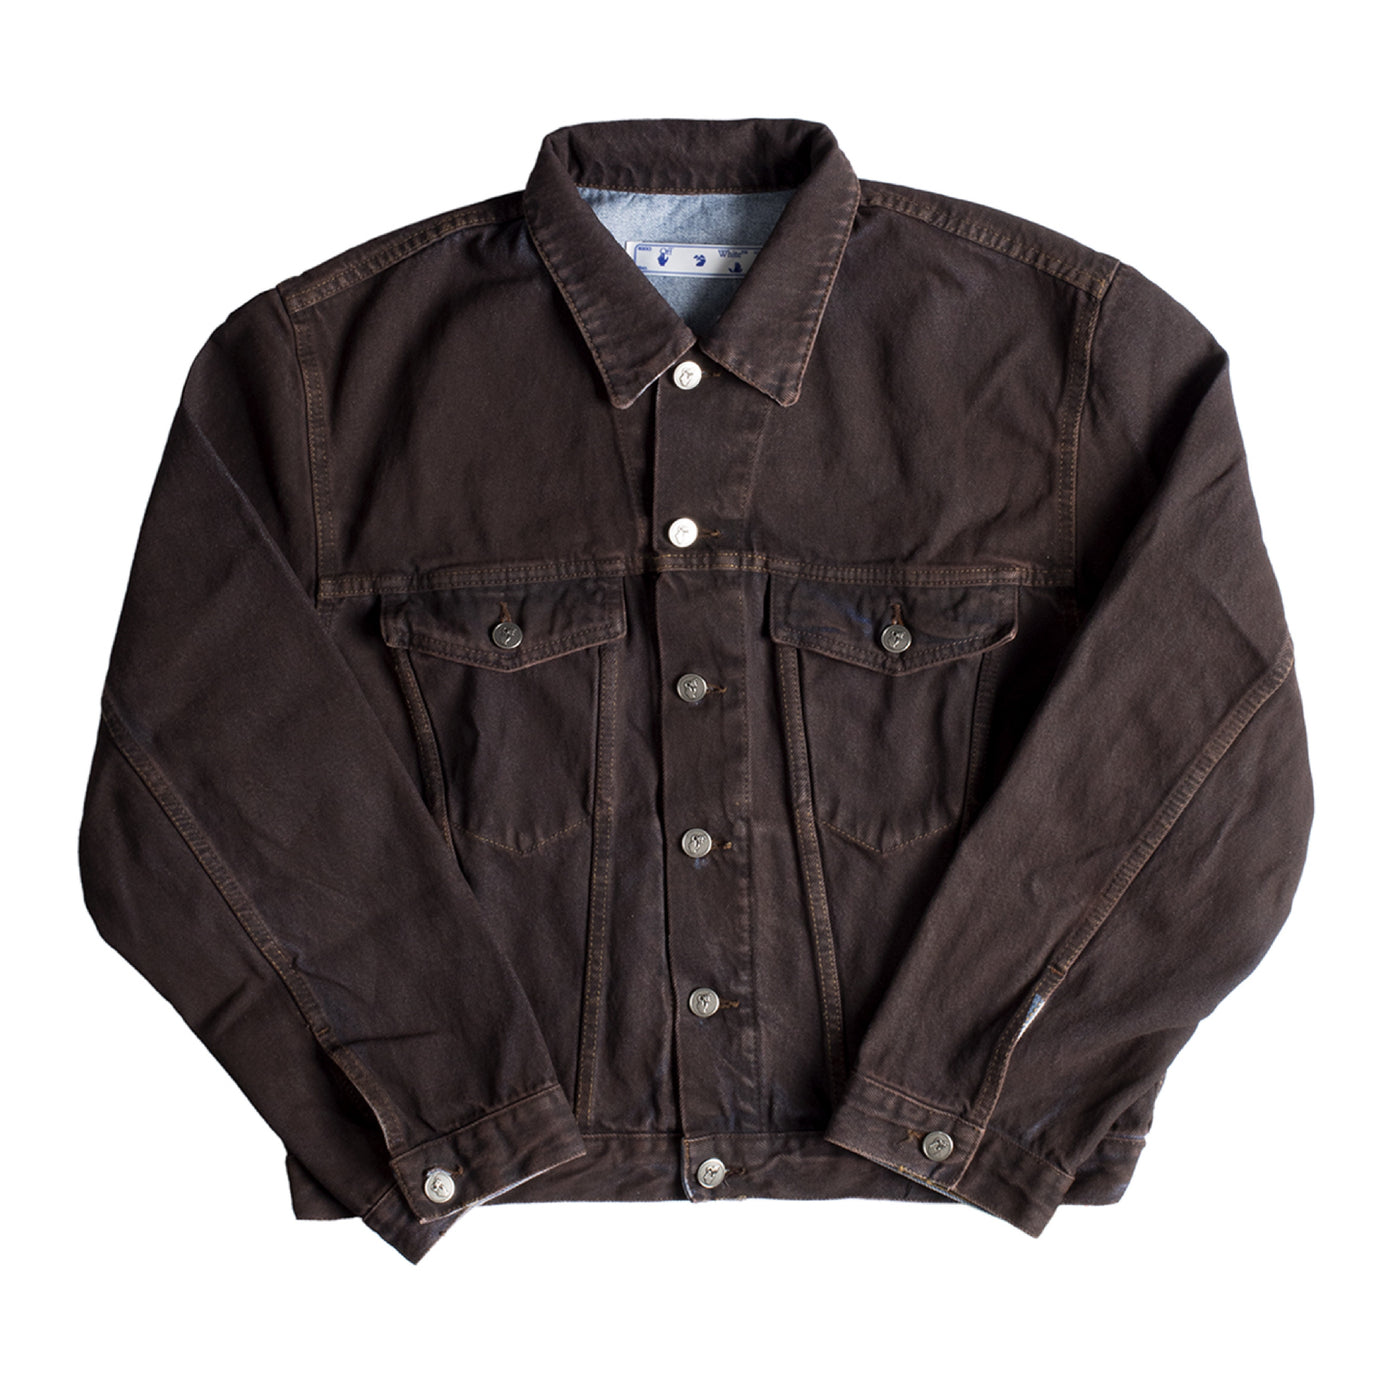 Load image into Gallery viewer, OFF-WHITE AGREEMENT RELAXED FIT JEAN JACKET BROWN